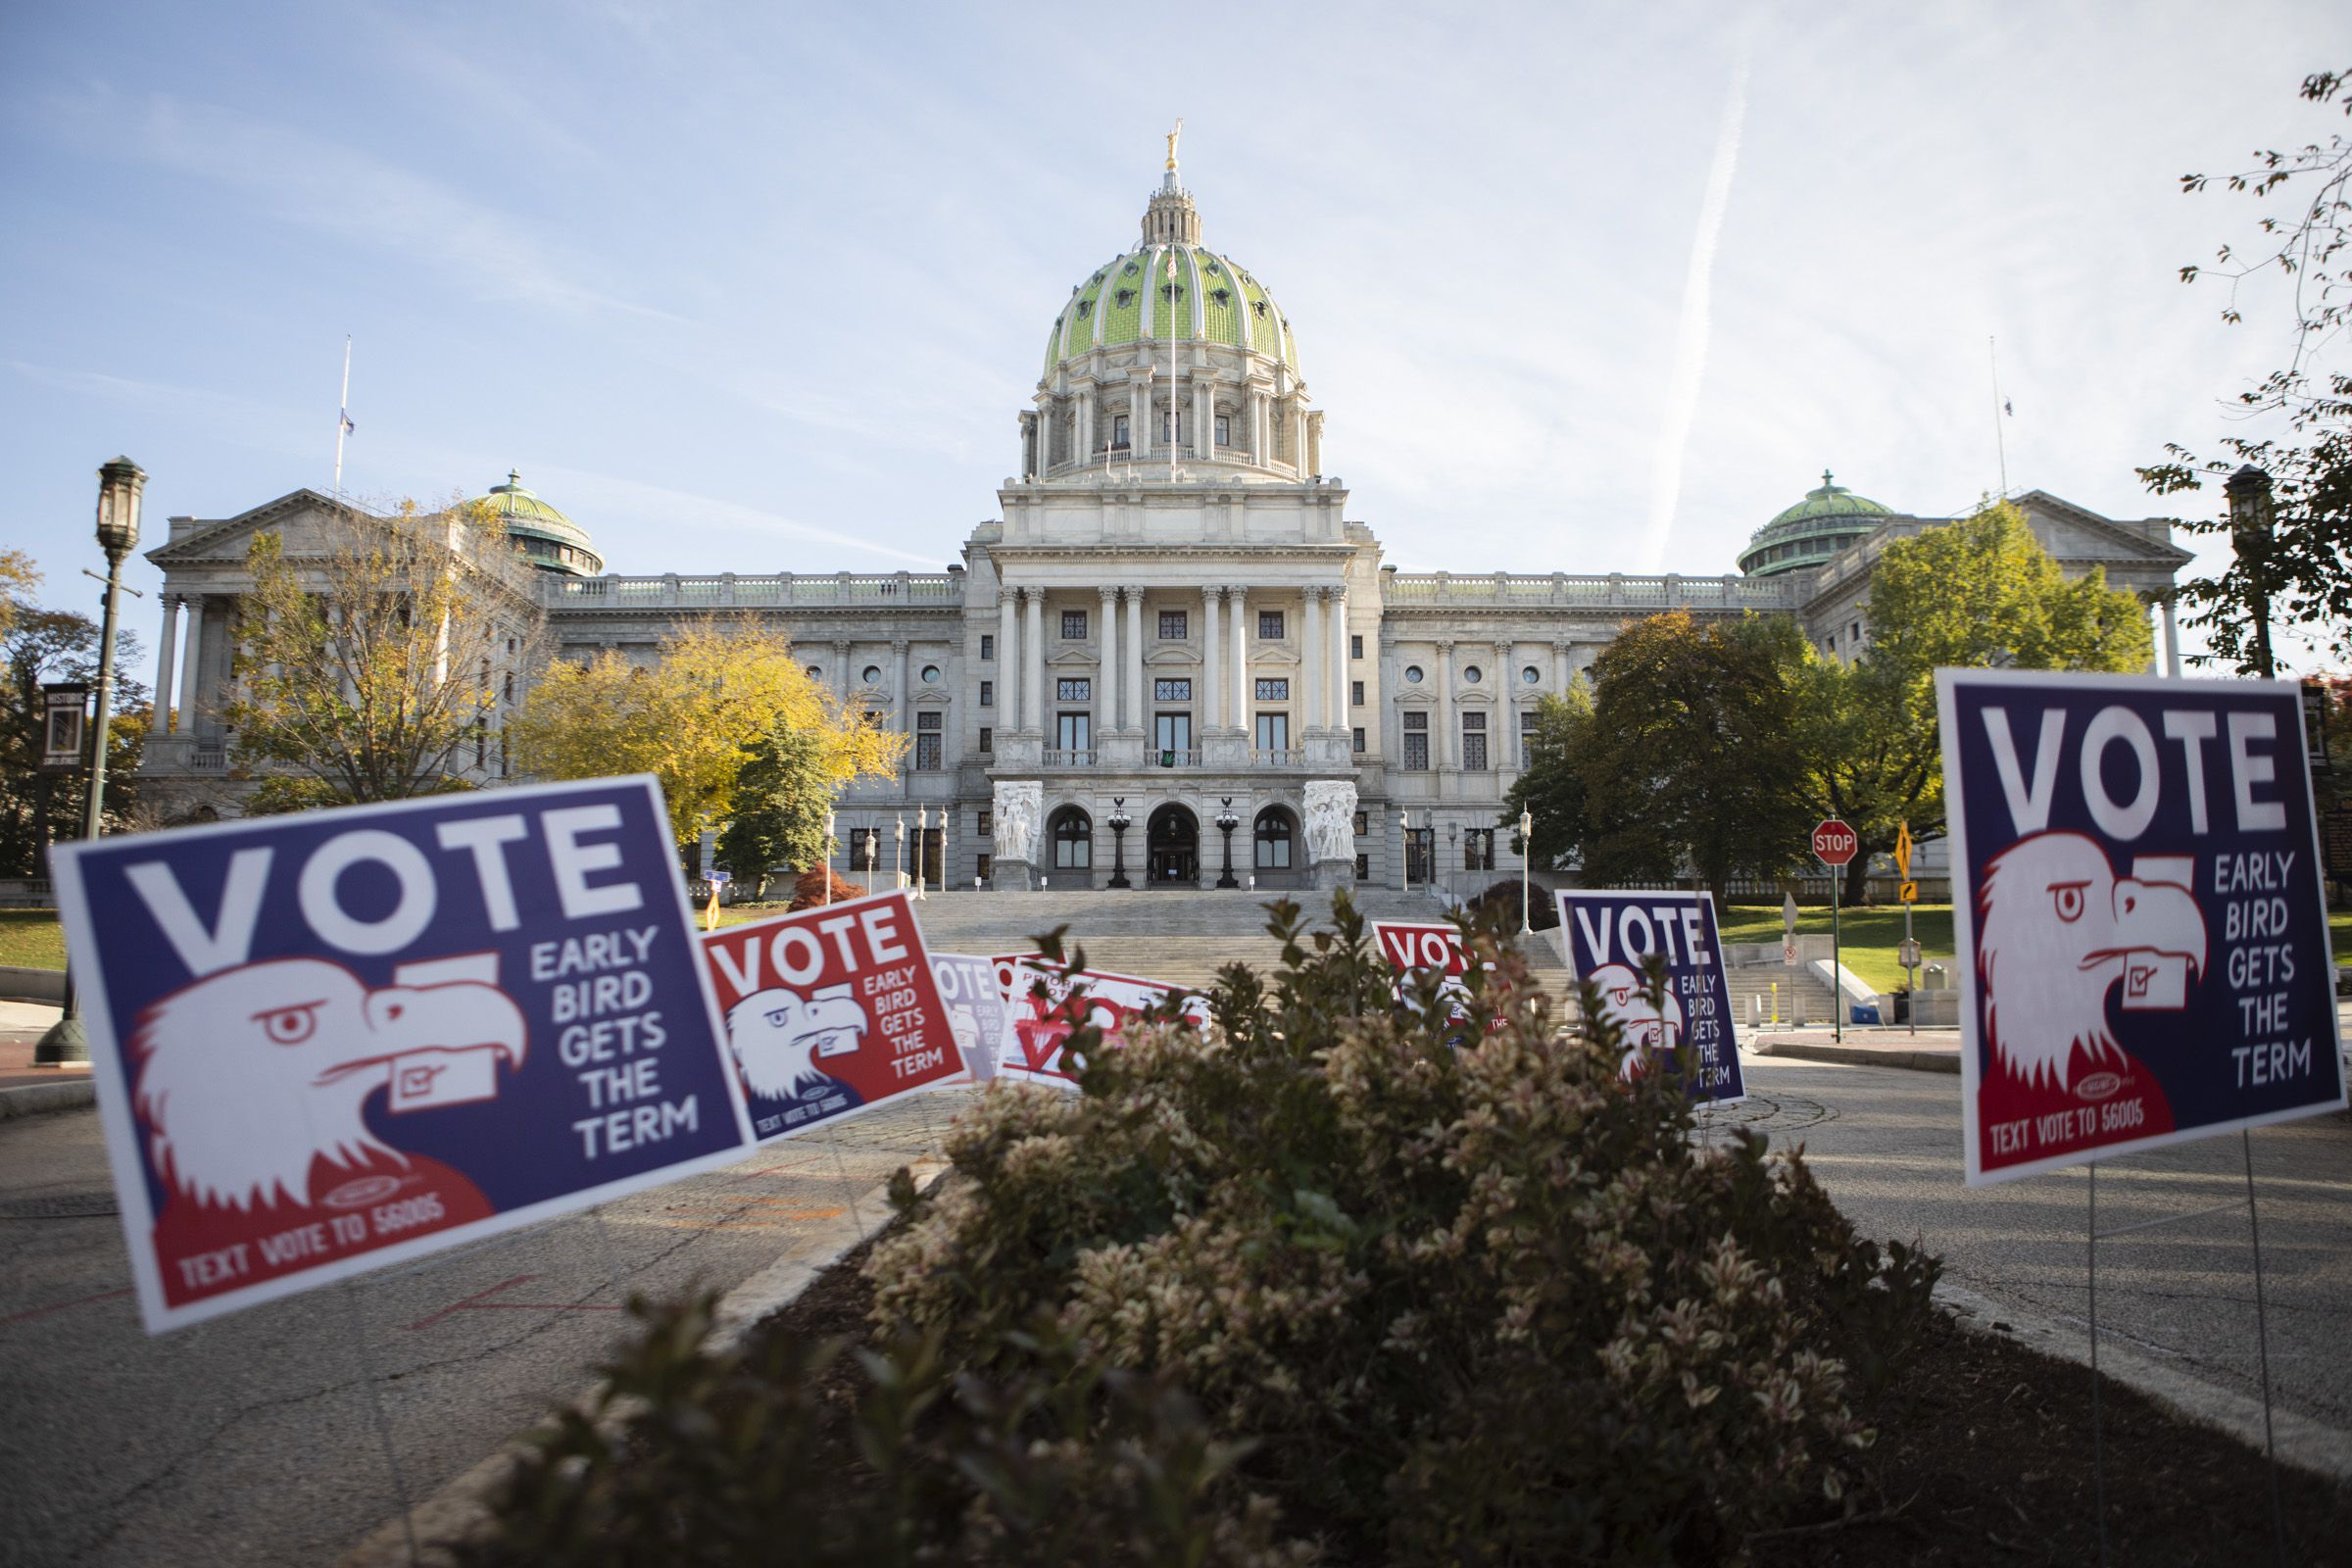 Pa. GOP lawmakers to probe unverified fraud claims in election they largely won